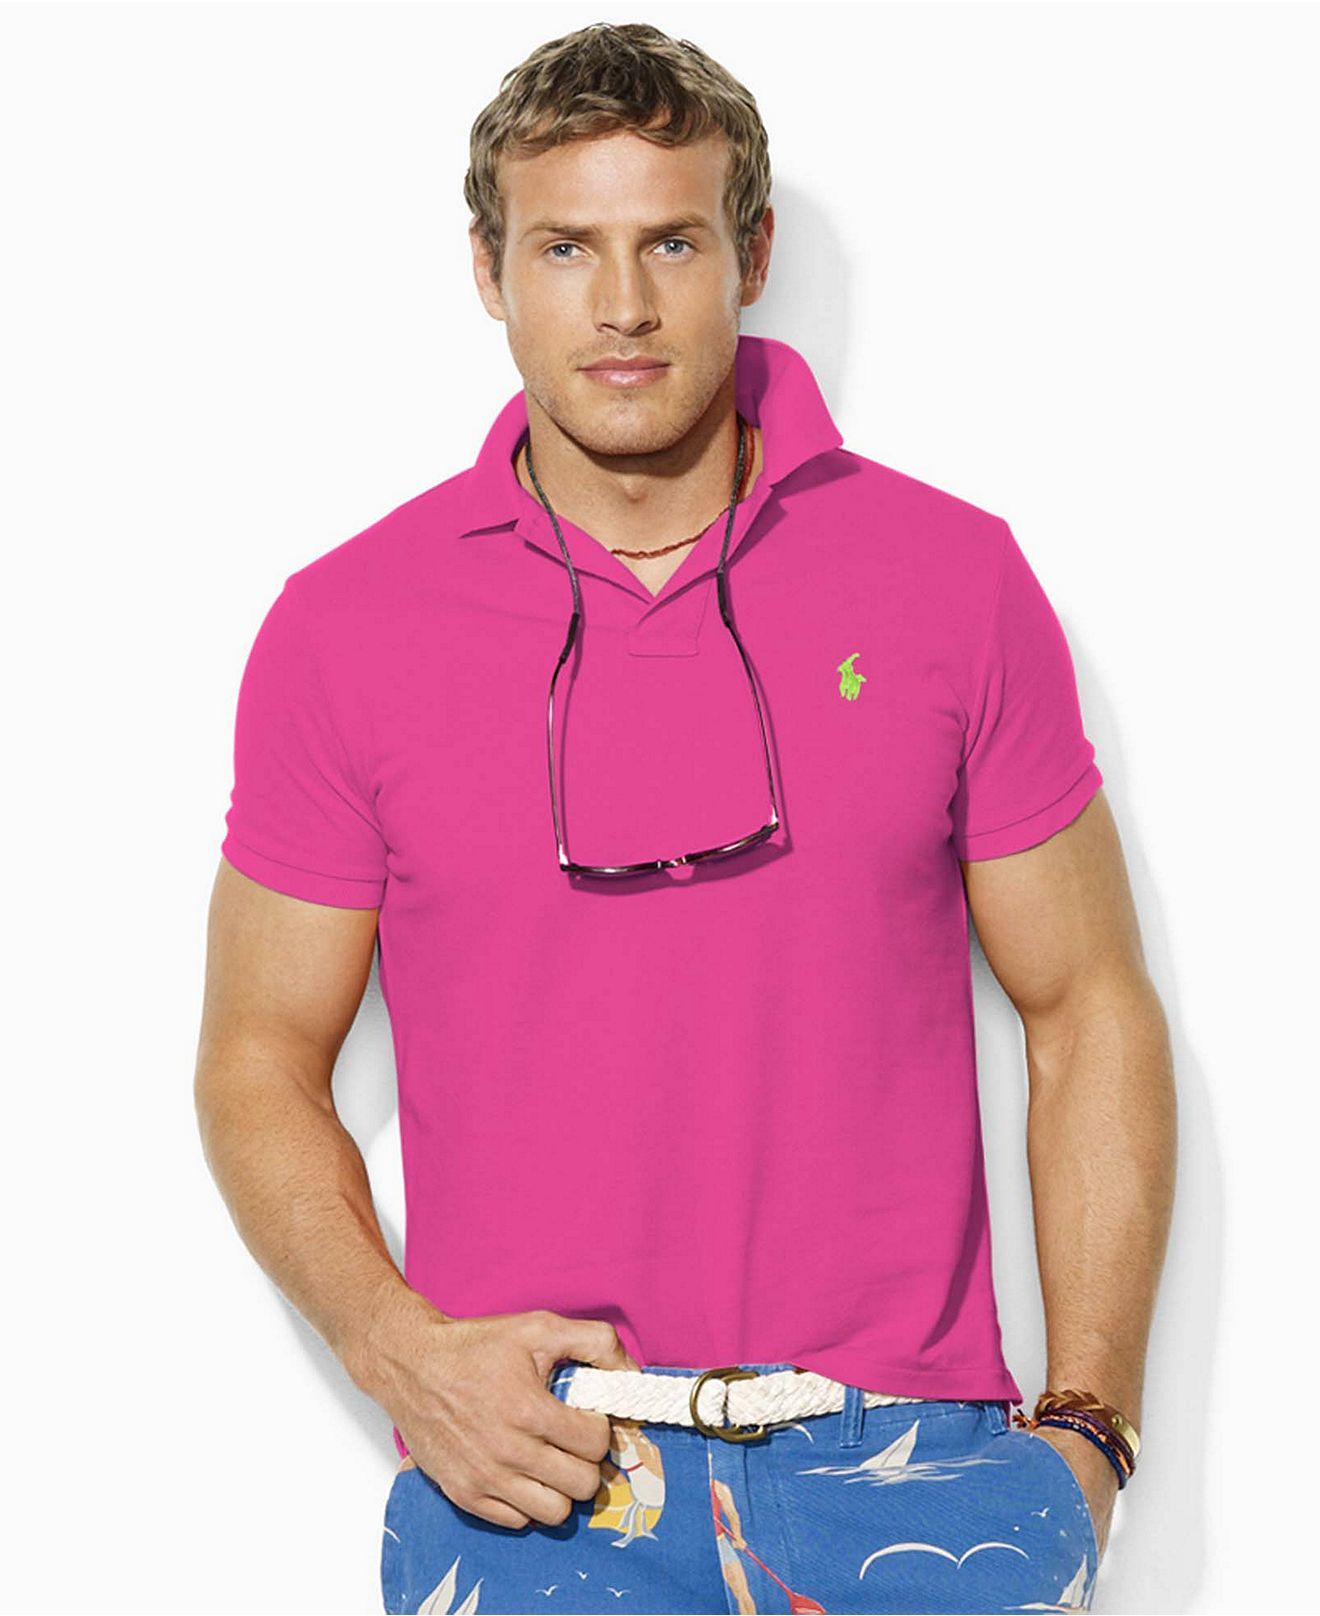 Whats Hotter The Grand Prix Pink Ralph Lauren Polo With Lime Green